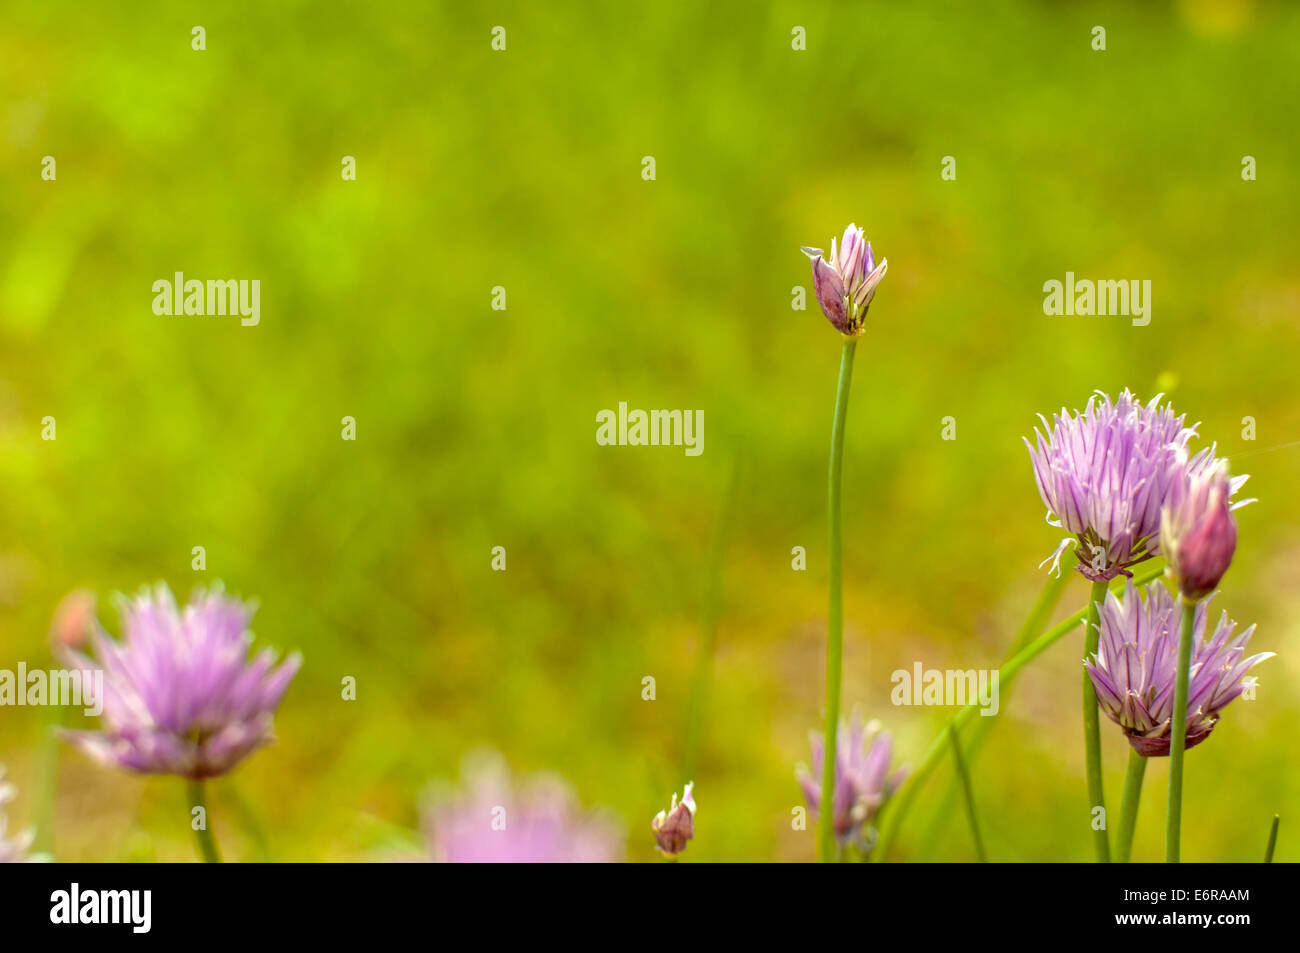 detail of small purple flower meadow with blurred background - Stock Image